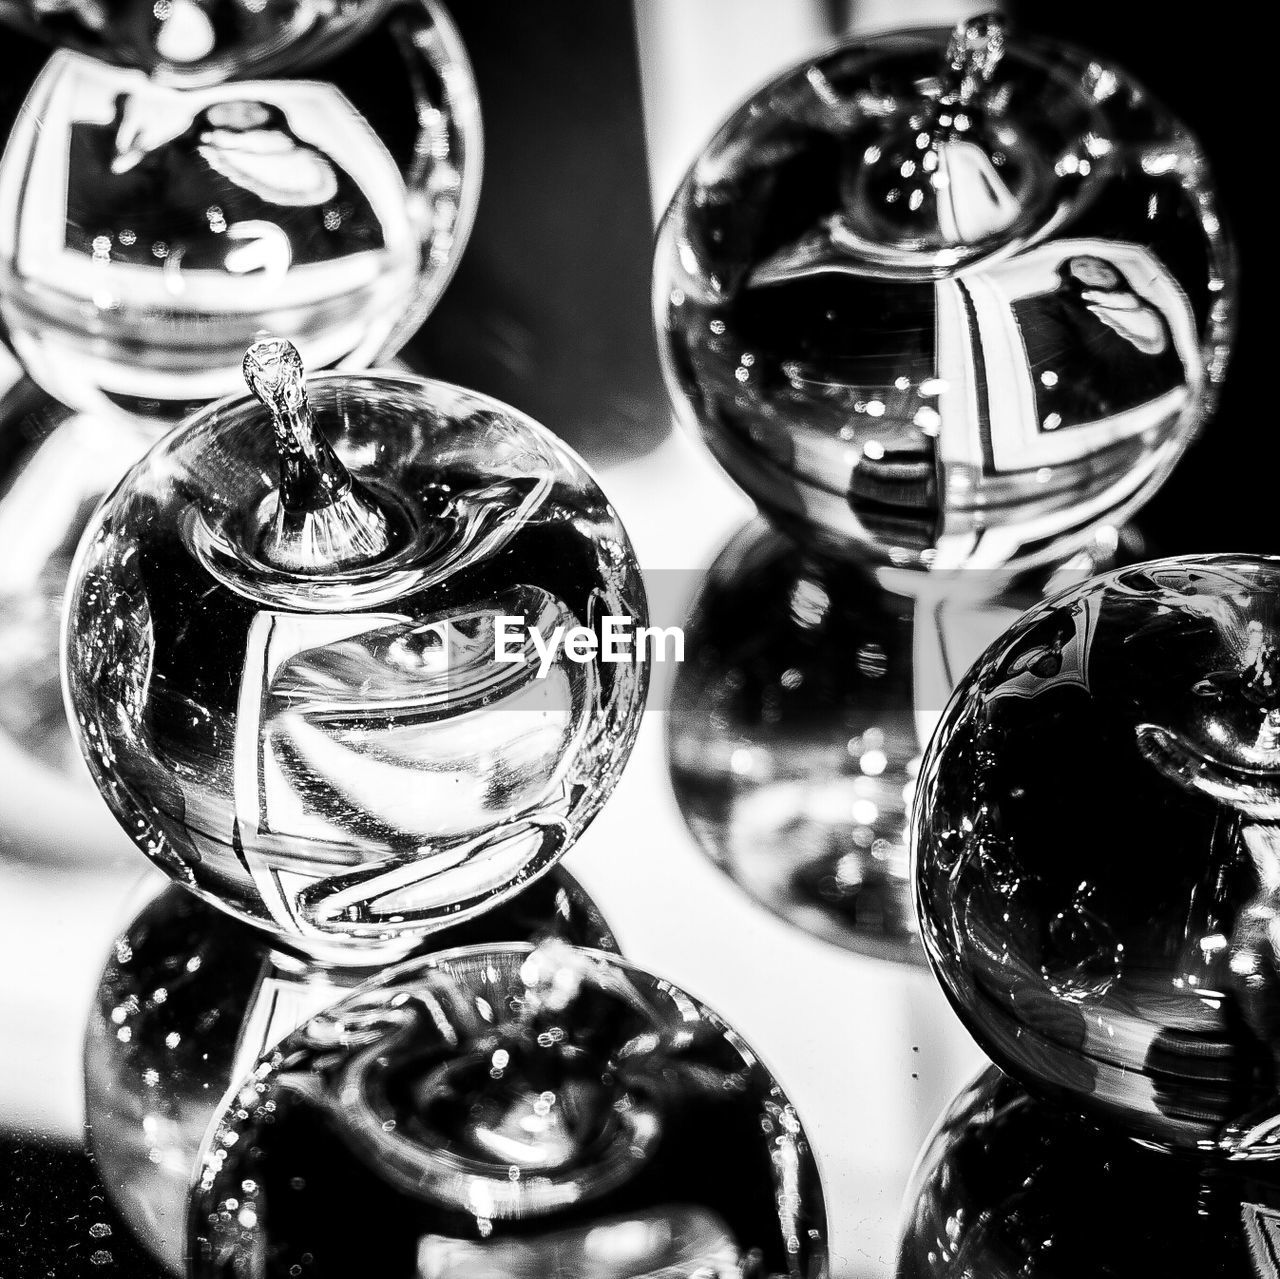 indoors, reflection, close-up, table, no people, shiny, focus on foreground, variation, choice, day